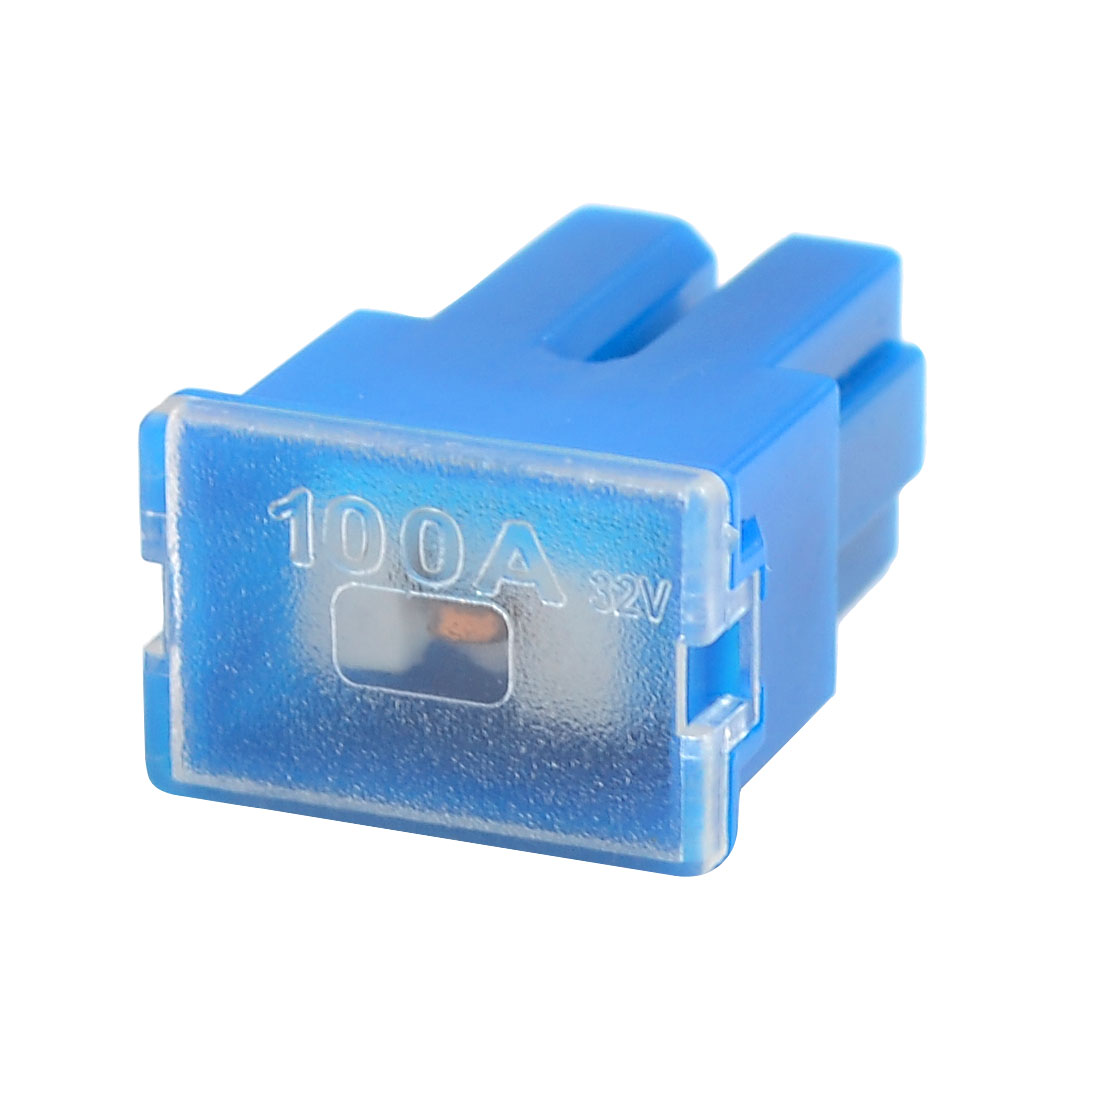 Blue Plastic Shell Female PAL Fuse 100A for Automotive Cars